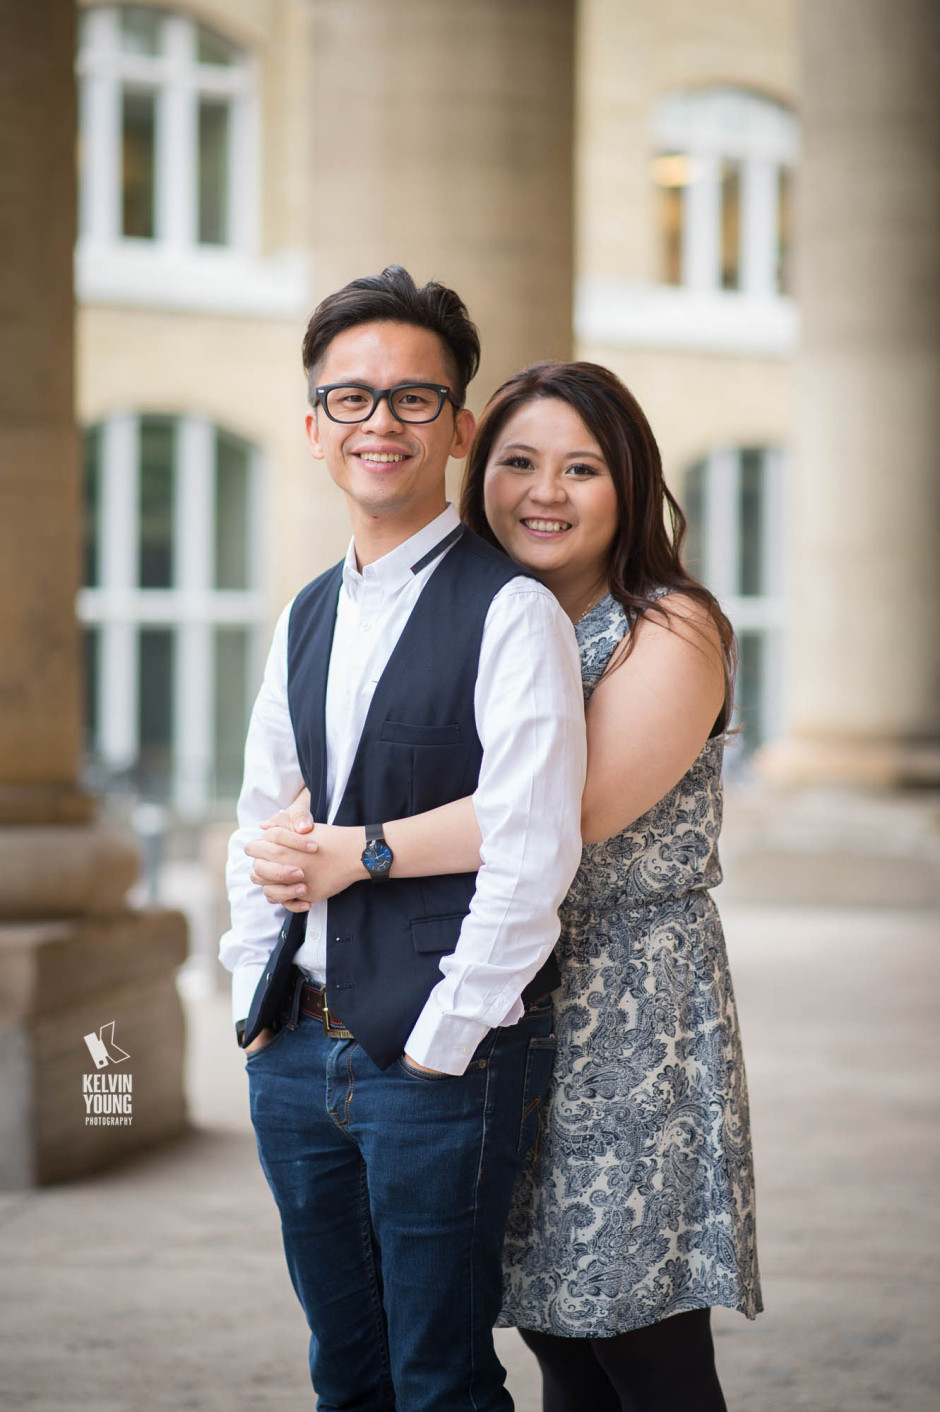 KYP15-Miranda-Wylie-Toronto-Engagement-Photography-Session-13